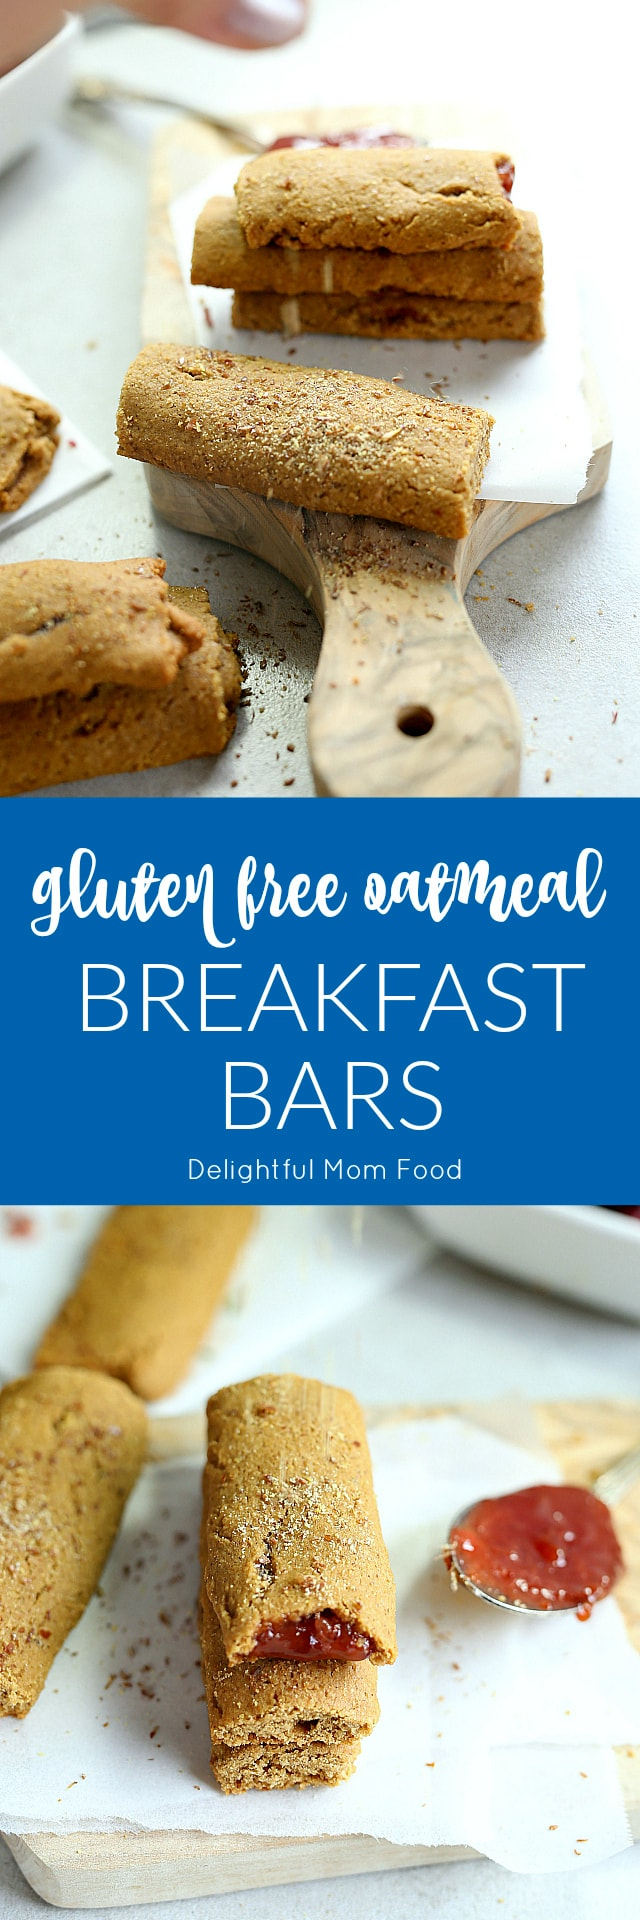 Oatmeal Breakfast Bars | Gluten Free, Dairy Free, Nut Free | Less than 30 minutes!